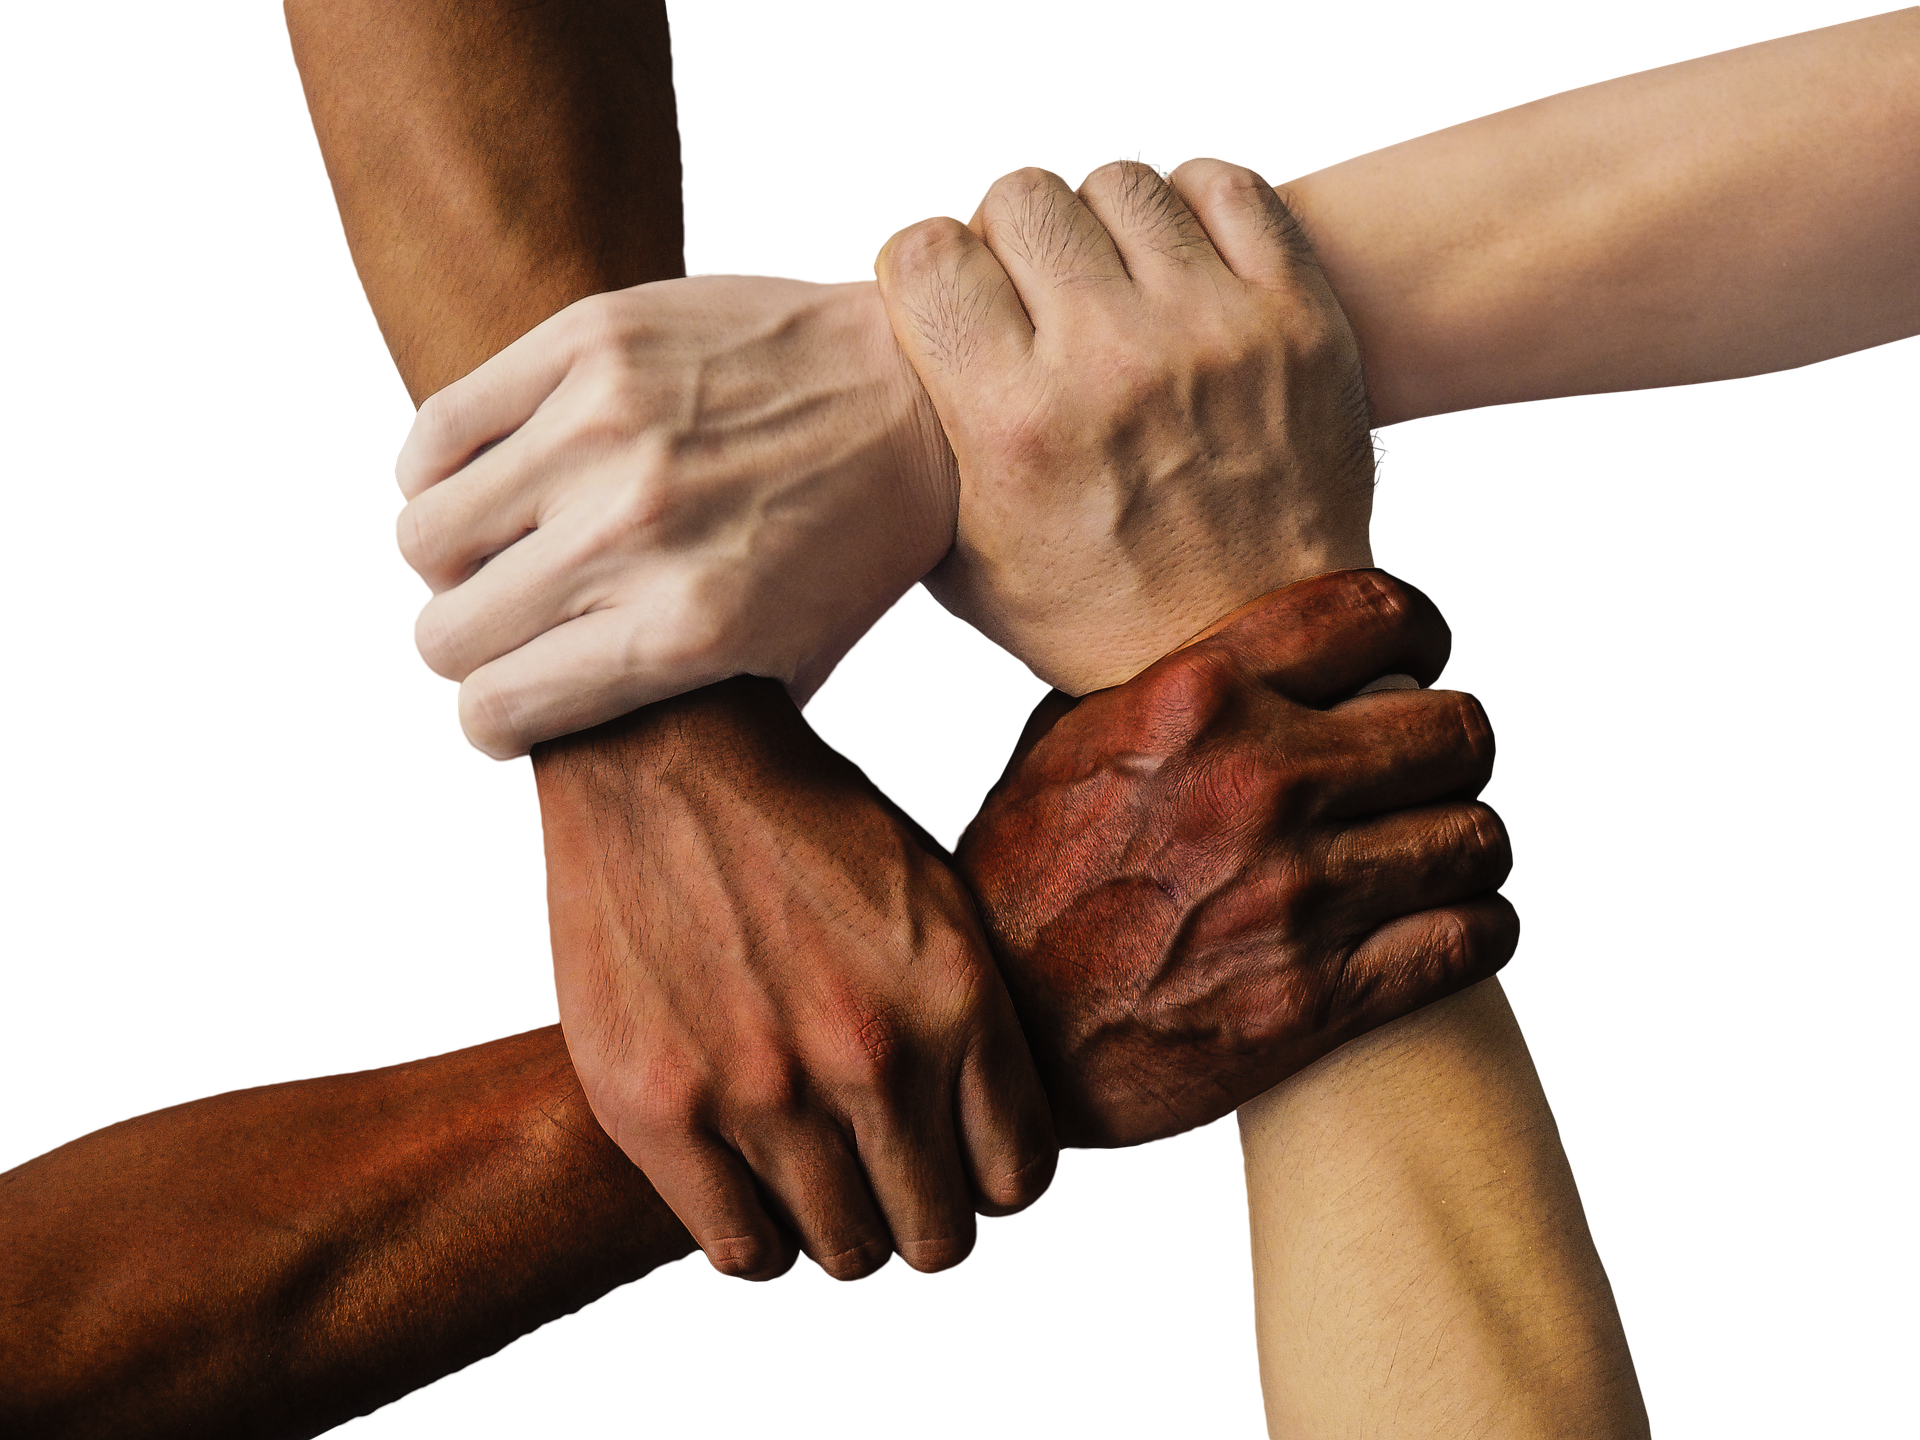 Working Family Solidarity's mission is to attain economic security for workers of all backgrounds by educating workers on employee rights, decreasing racial tension, and building racial alliances. -